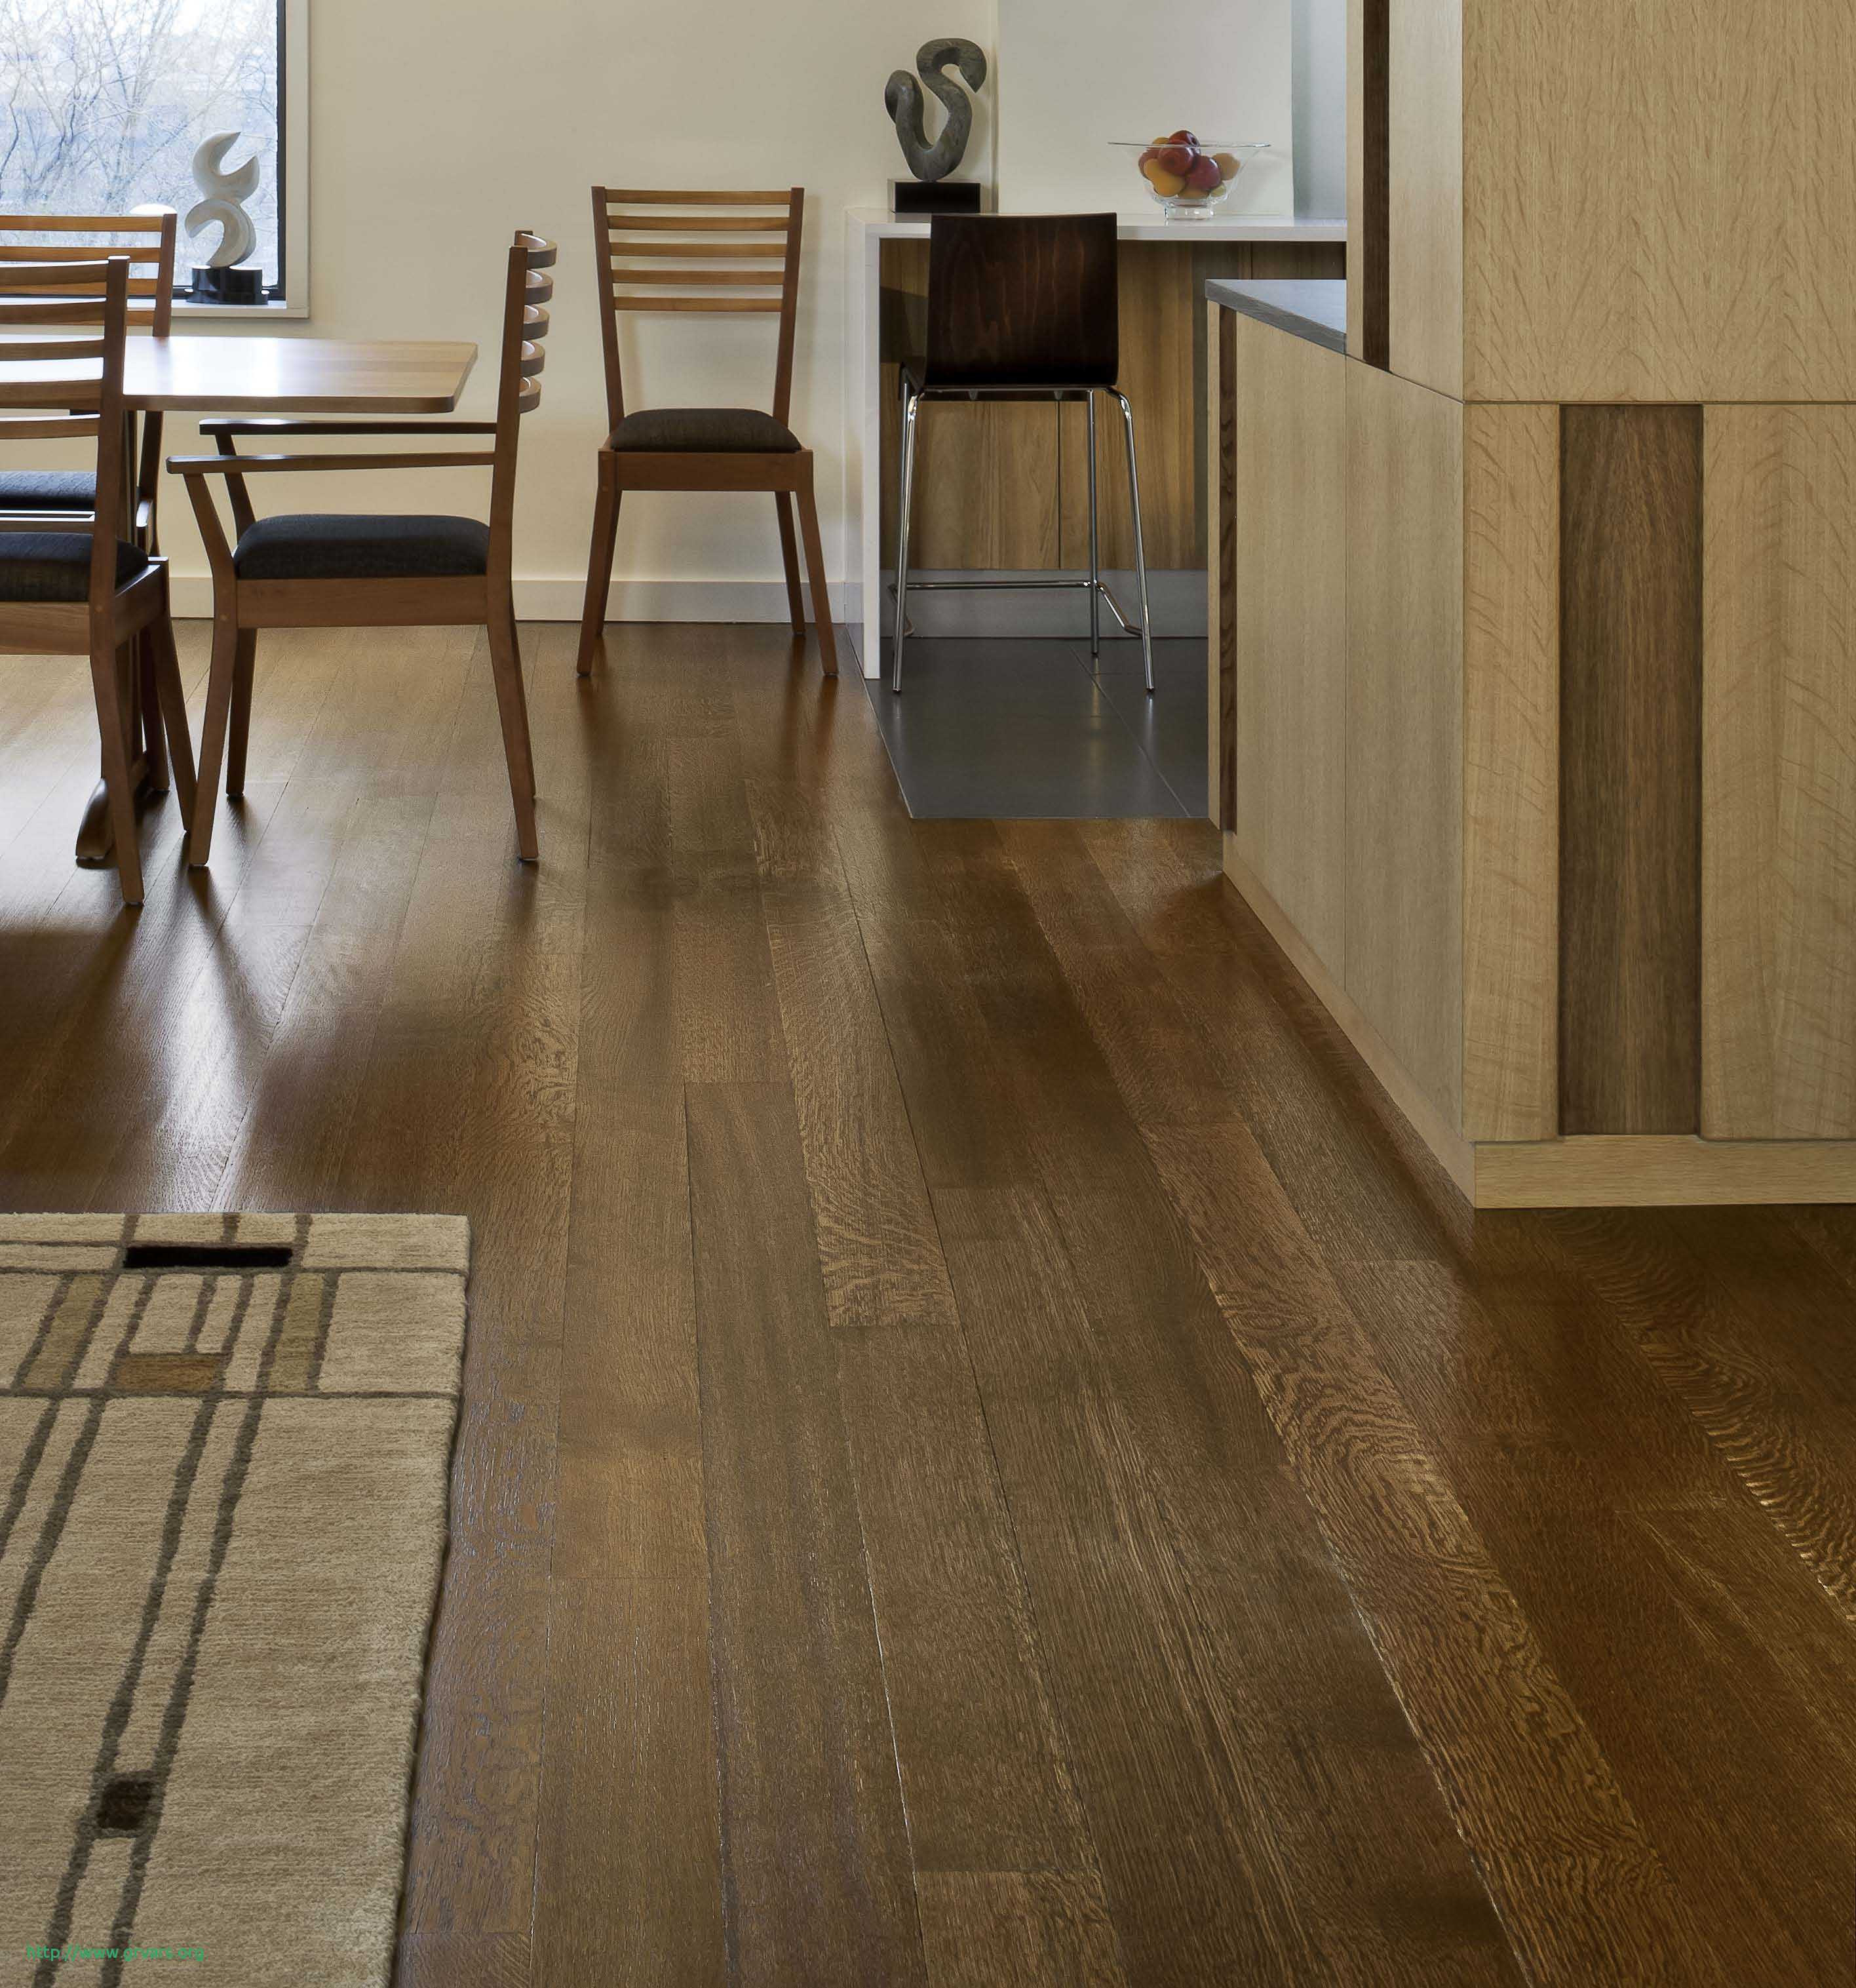 3 8 engineered hardwood flooring installation of 16 impressionnant bruce flooring customer service ideas blog with bruce flooring customer service inspirant engaging discount hardwood flooring 5 where to buy inspirational 0d